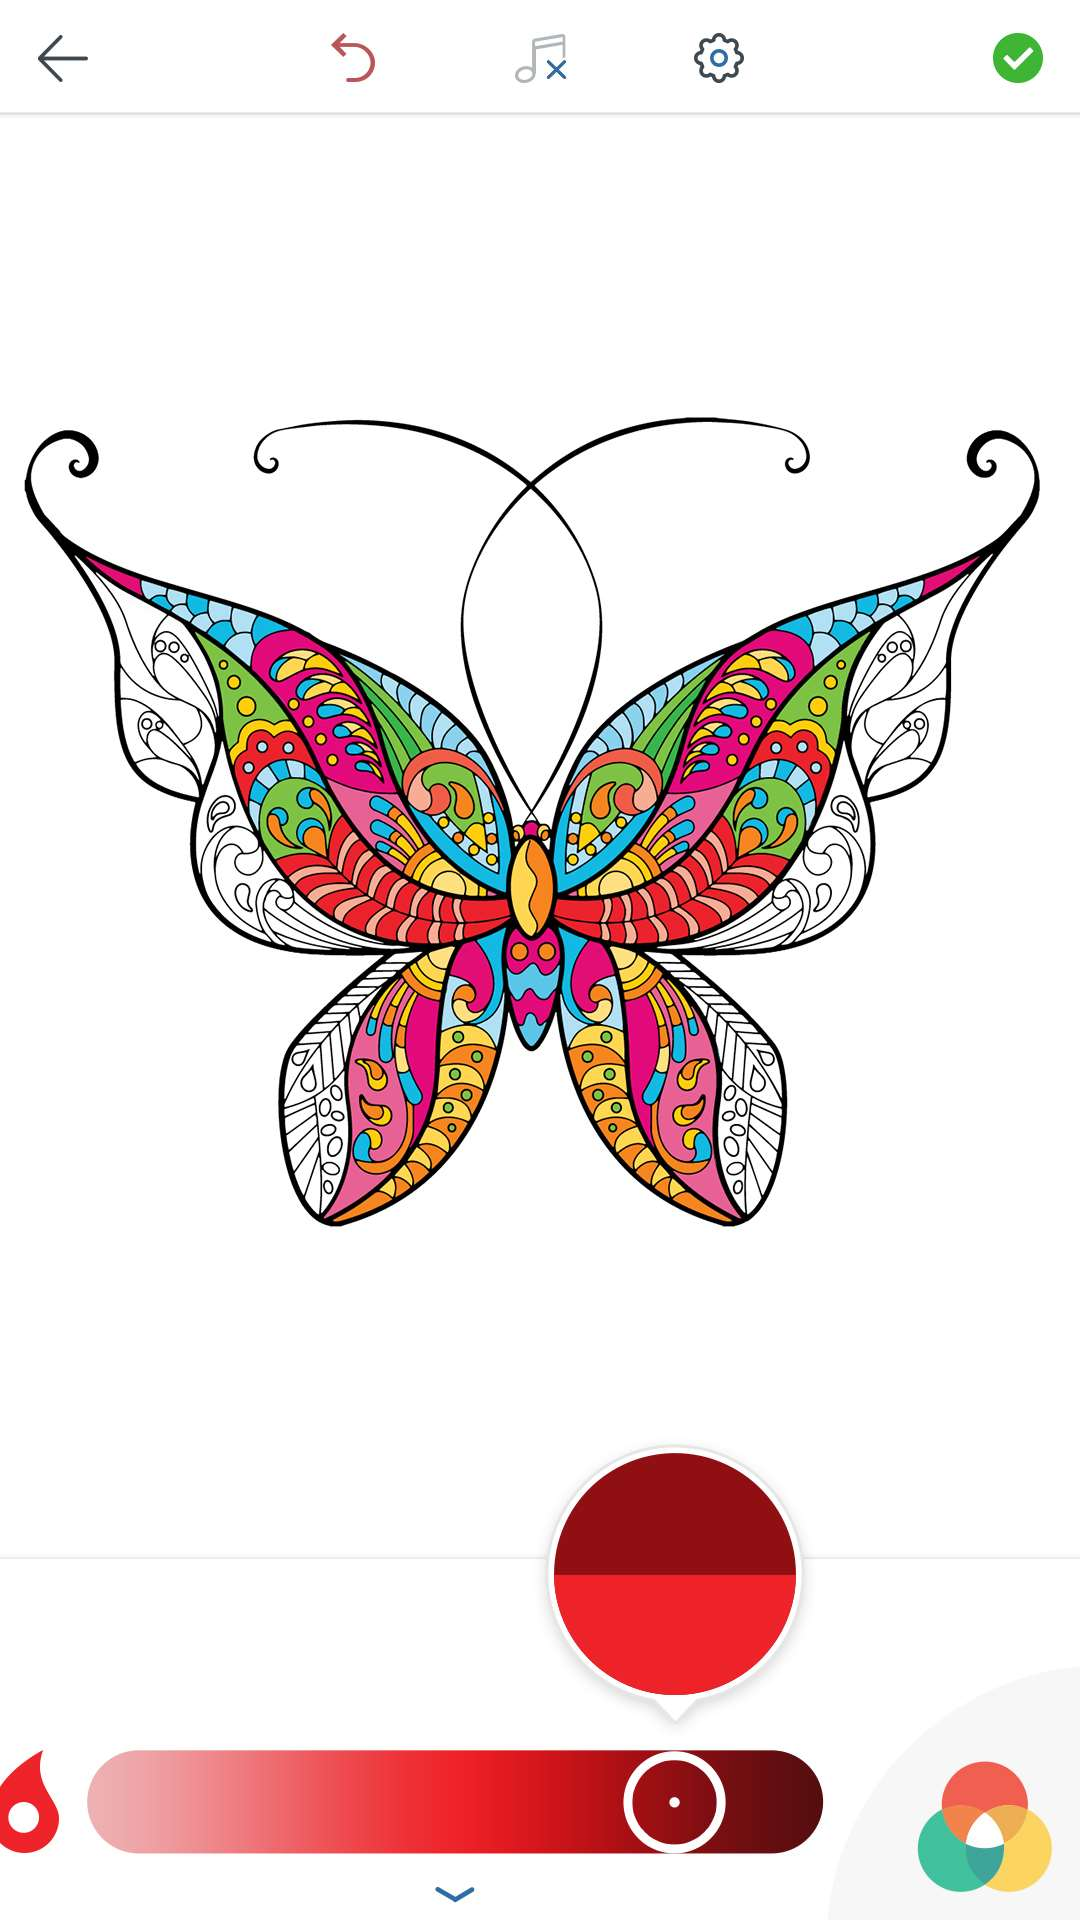 Butterfly coloring page symmetry - Adult Butterfly Coloring Pages Adult Butterfly Coloring Pages